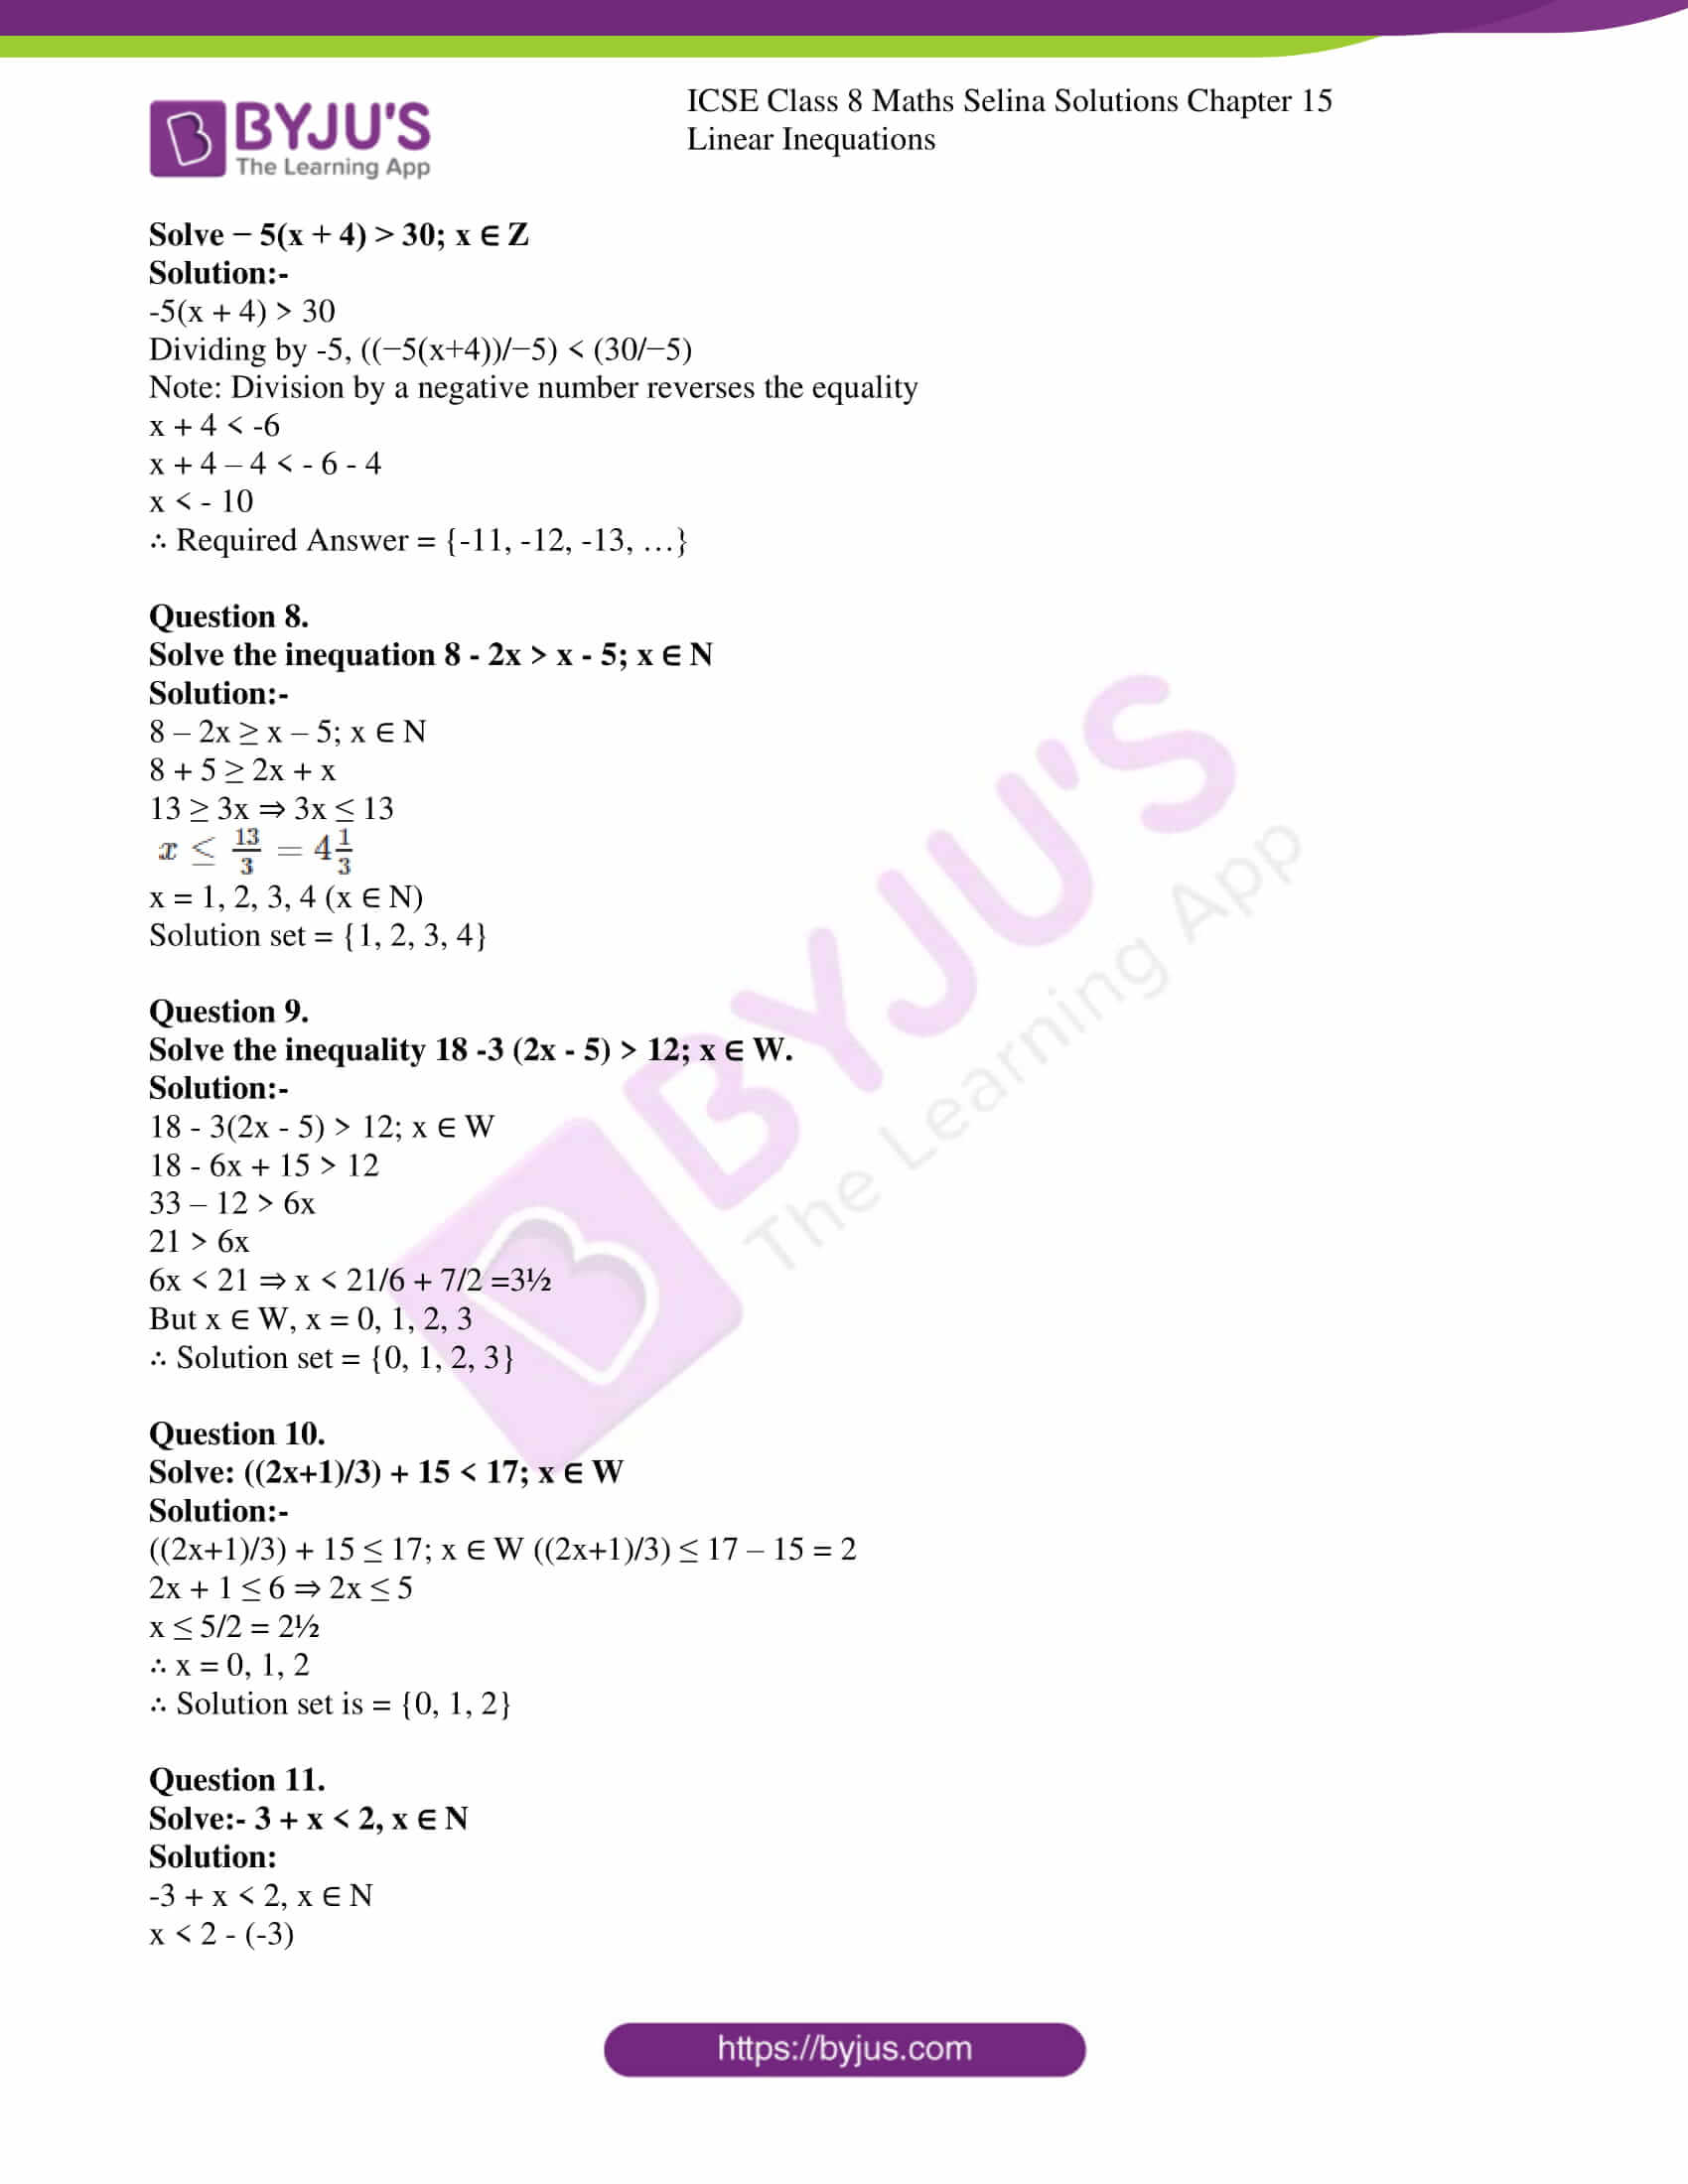 icse class 8 maths may3 selina solutions chapter 15 linear inequations 3